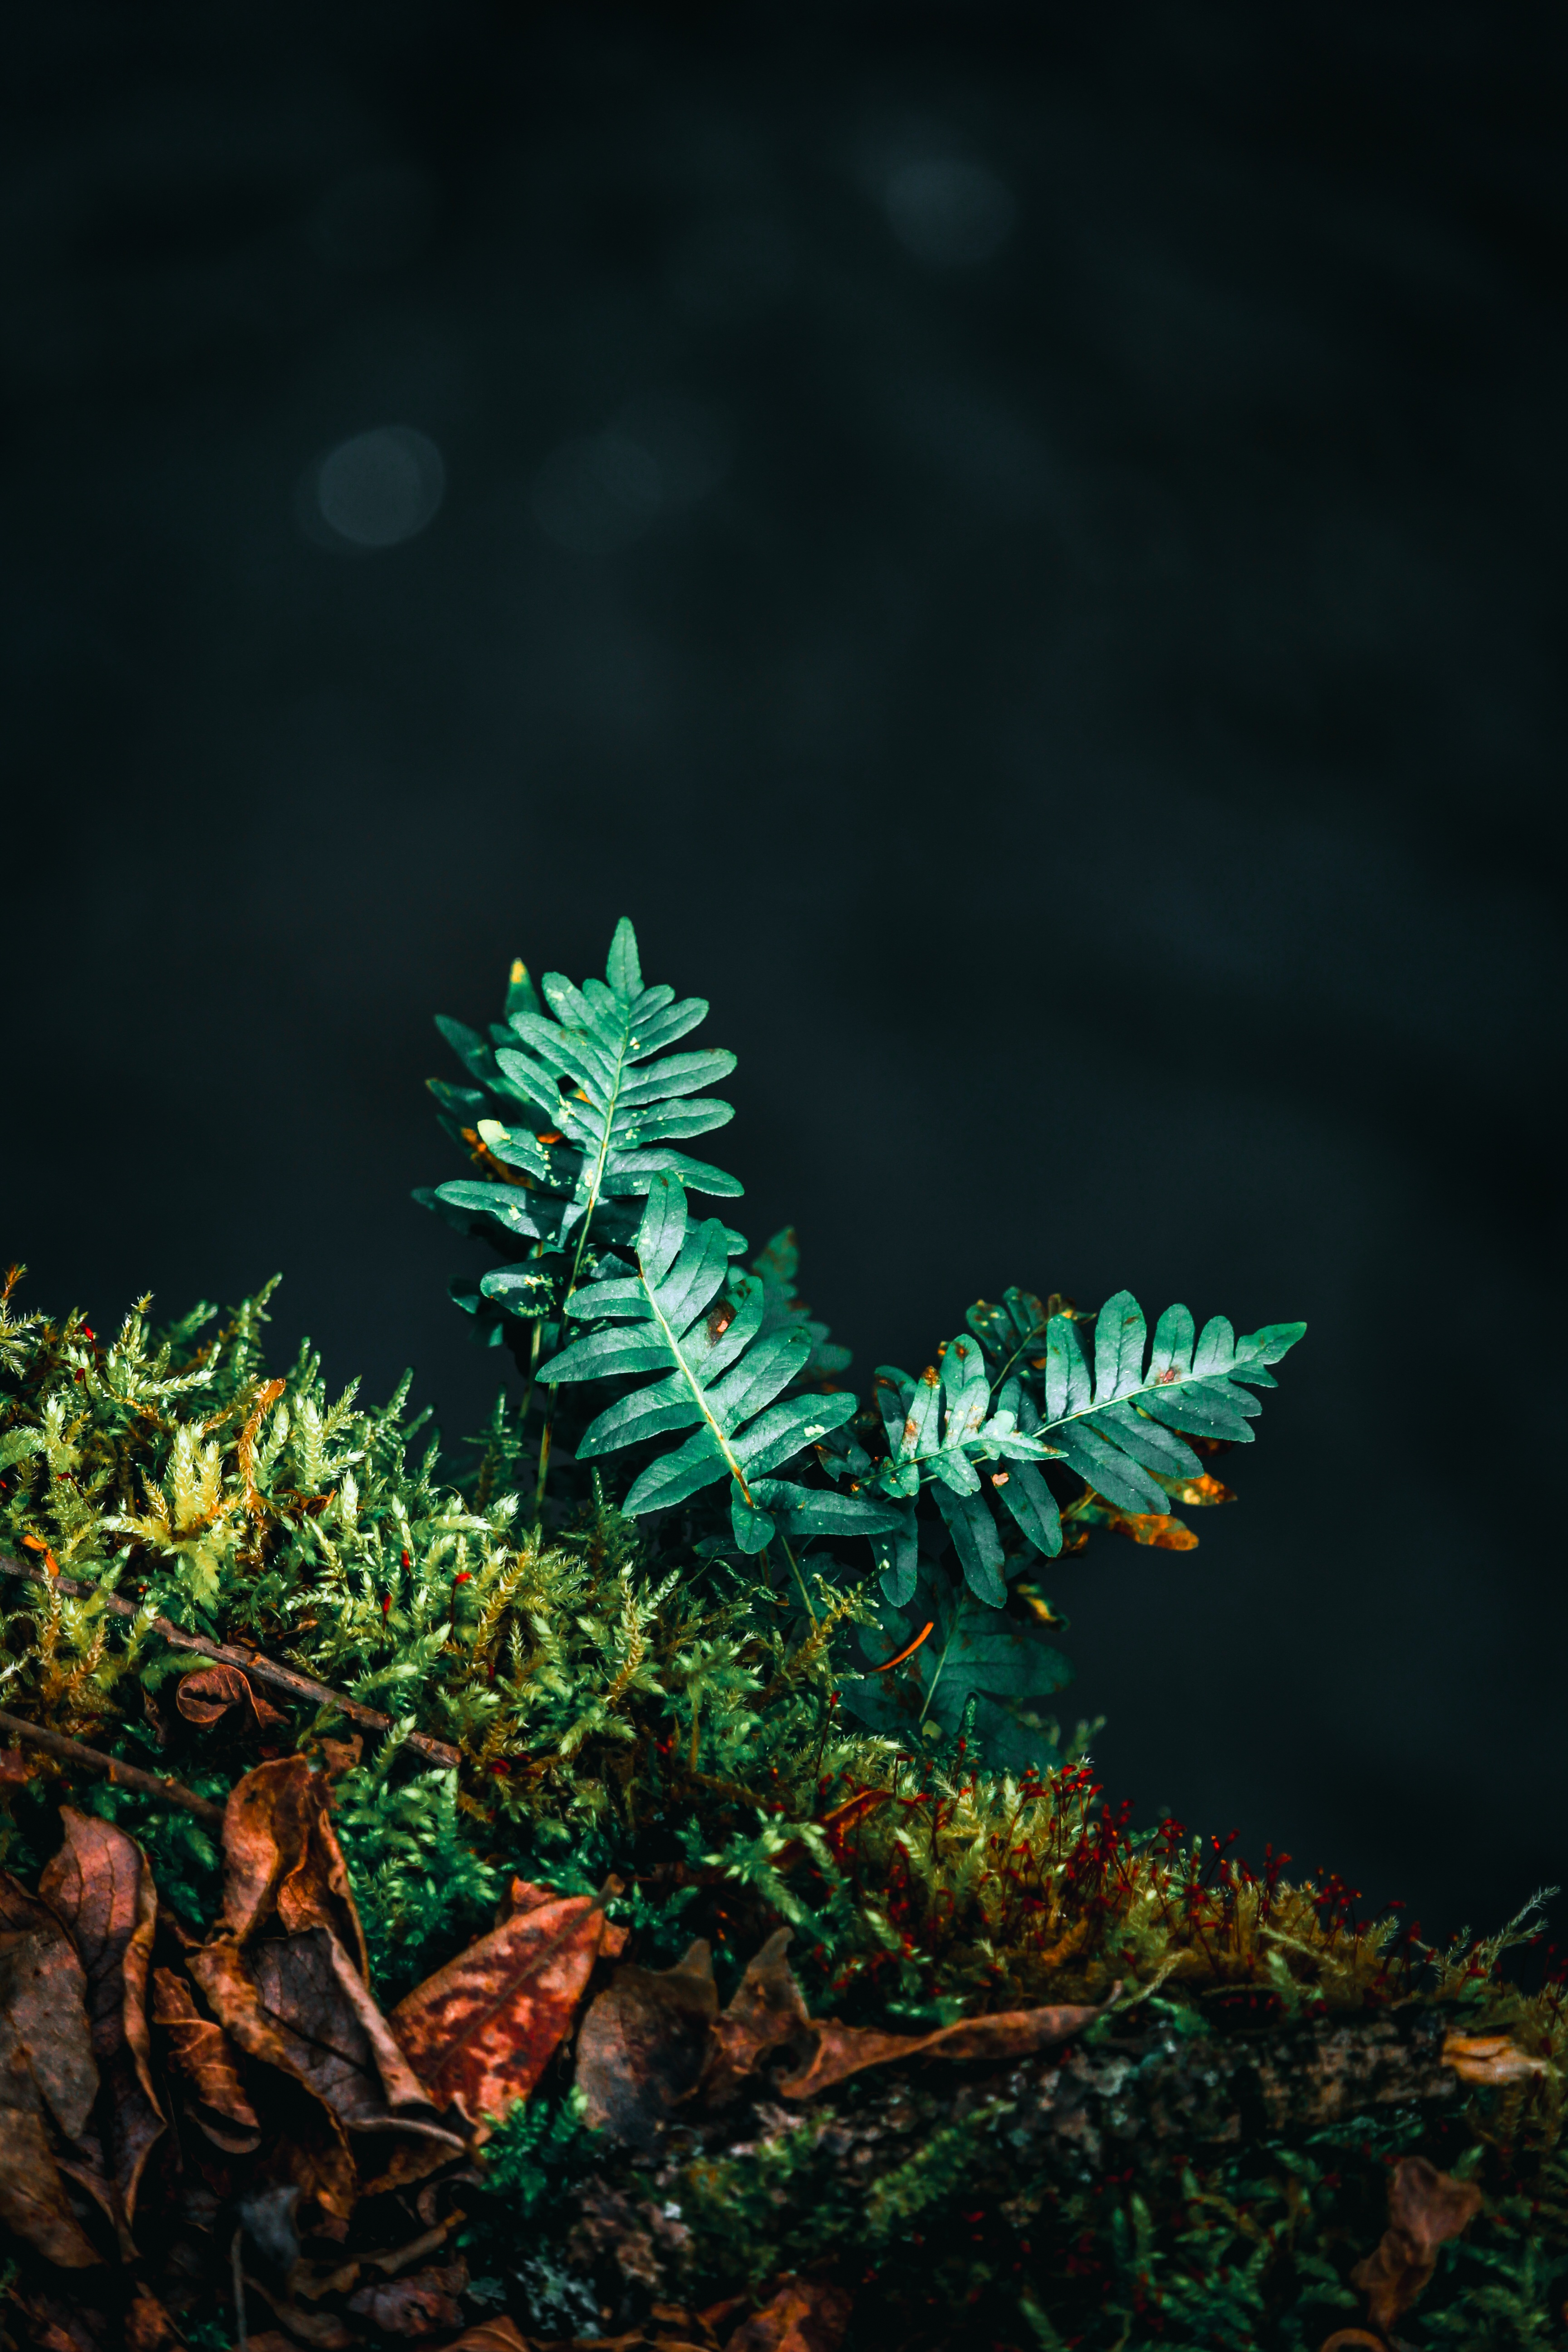 148576 download wallpaper Leaves, Plant, Macro, Fern, Carved screensavers and pictures for free